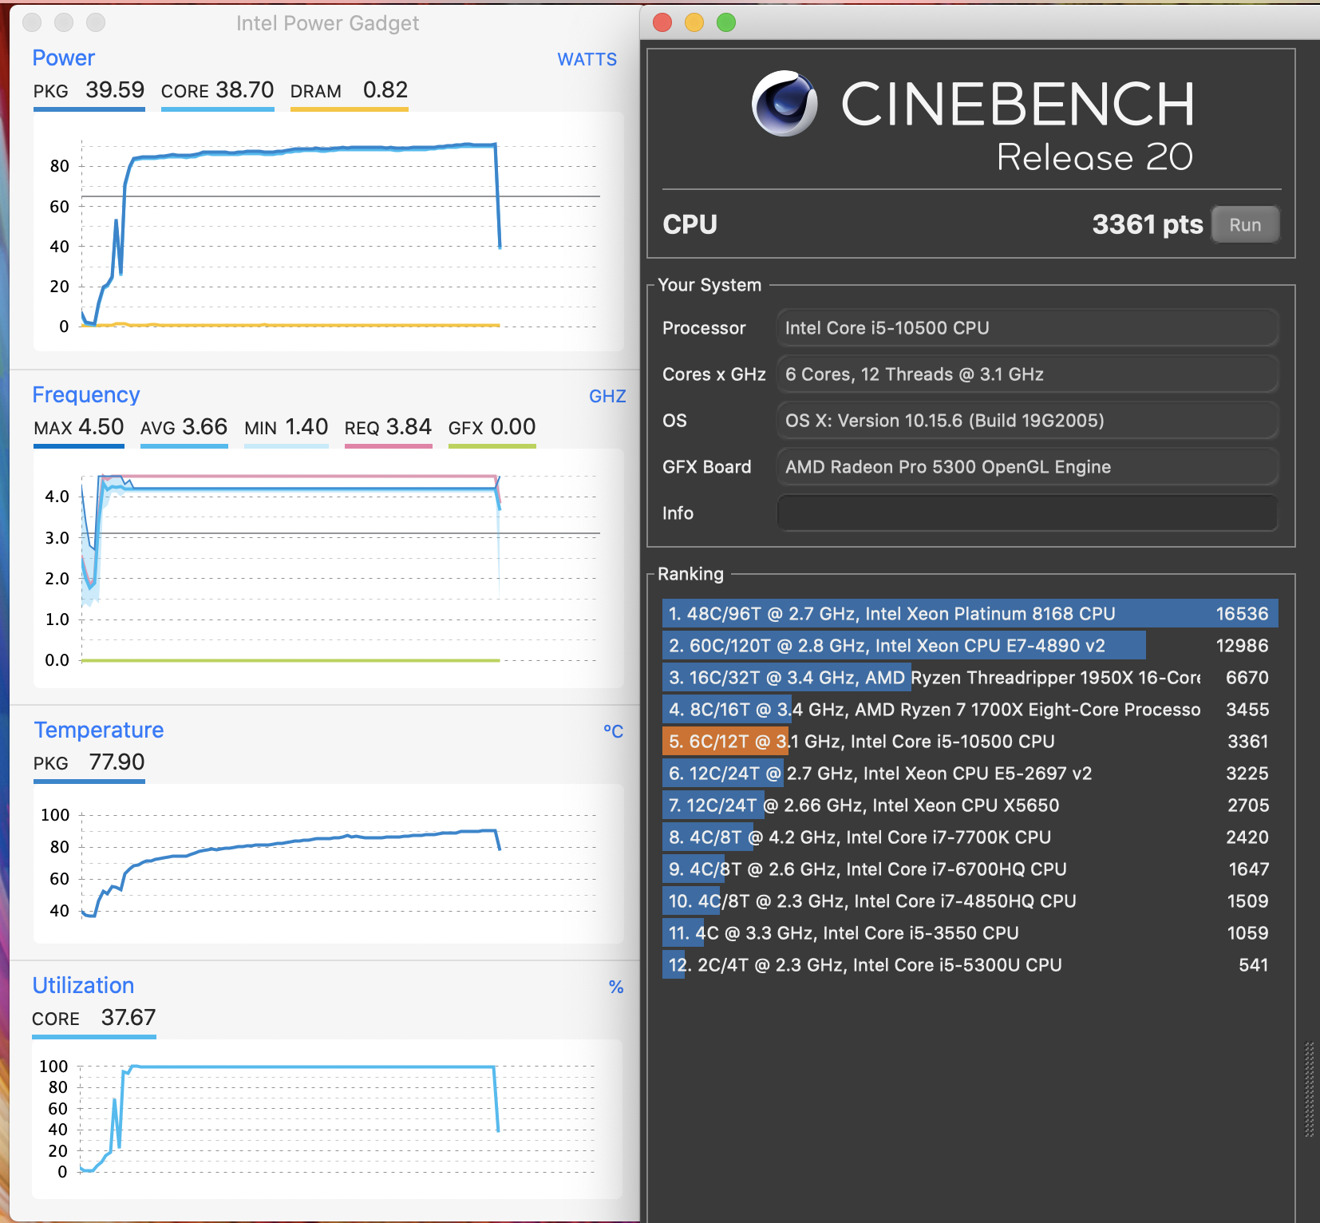 Cinebench R20 while monitoring performance with Intel Power Gadget